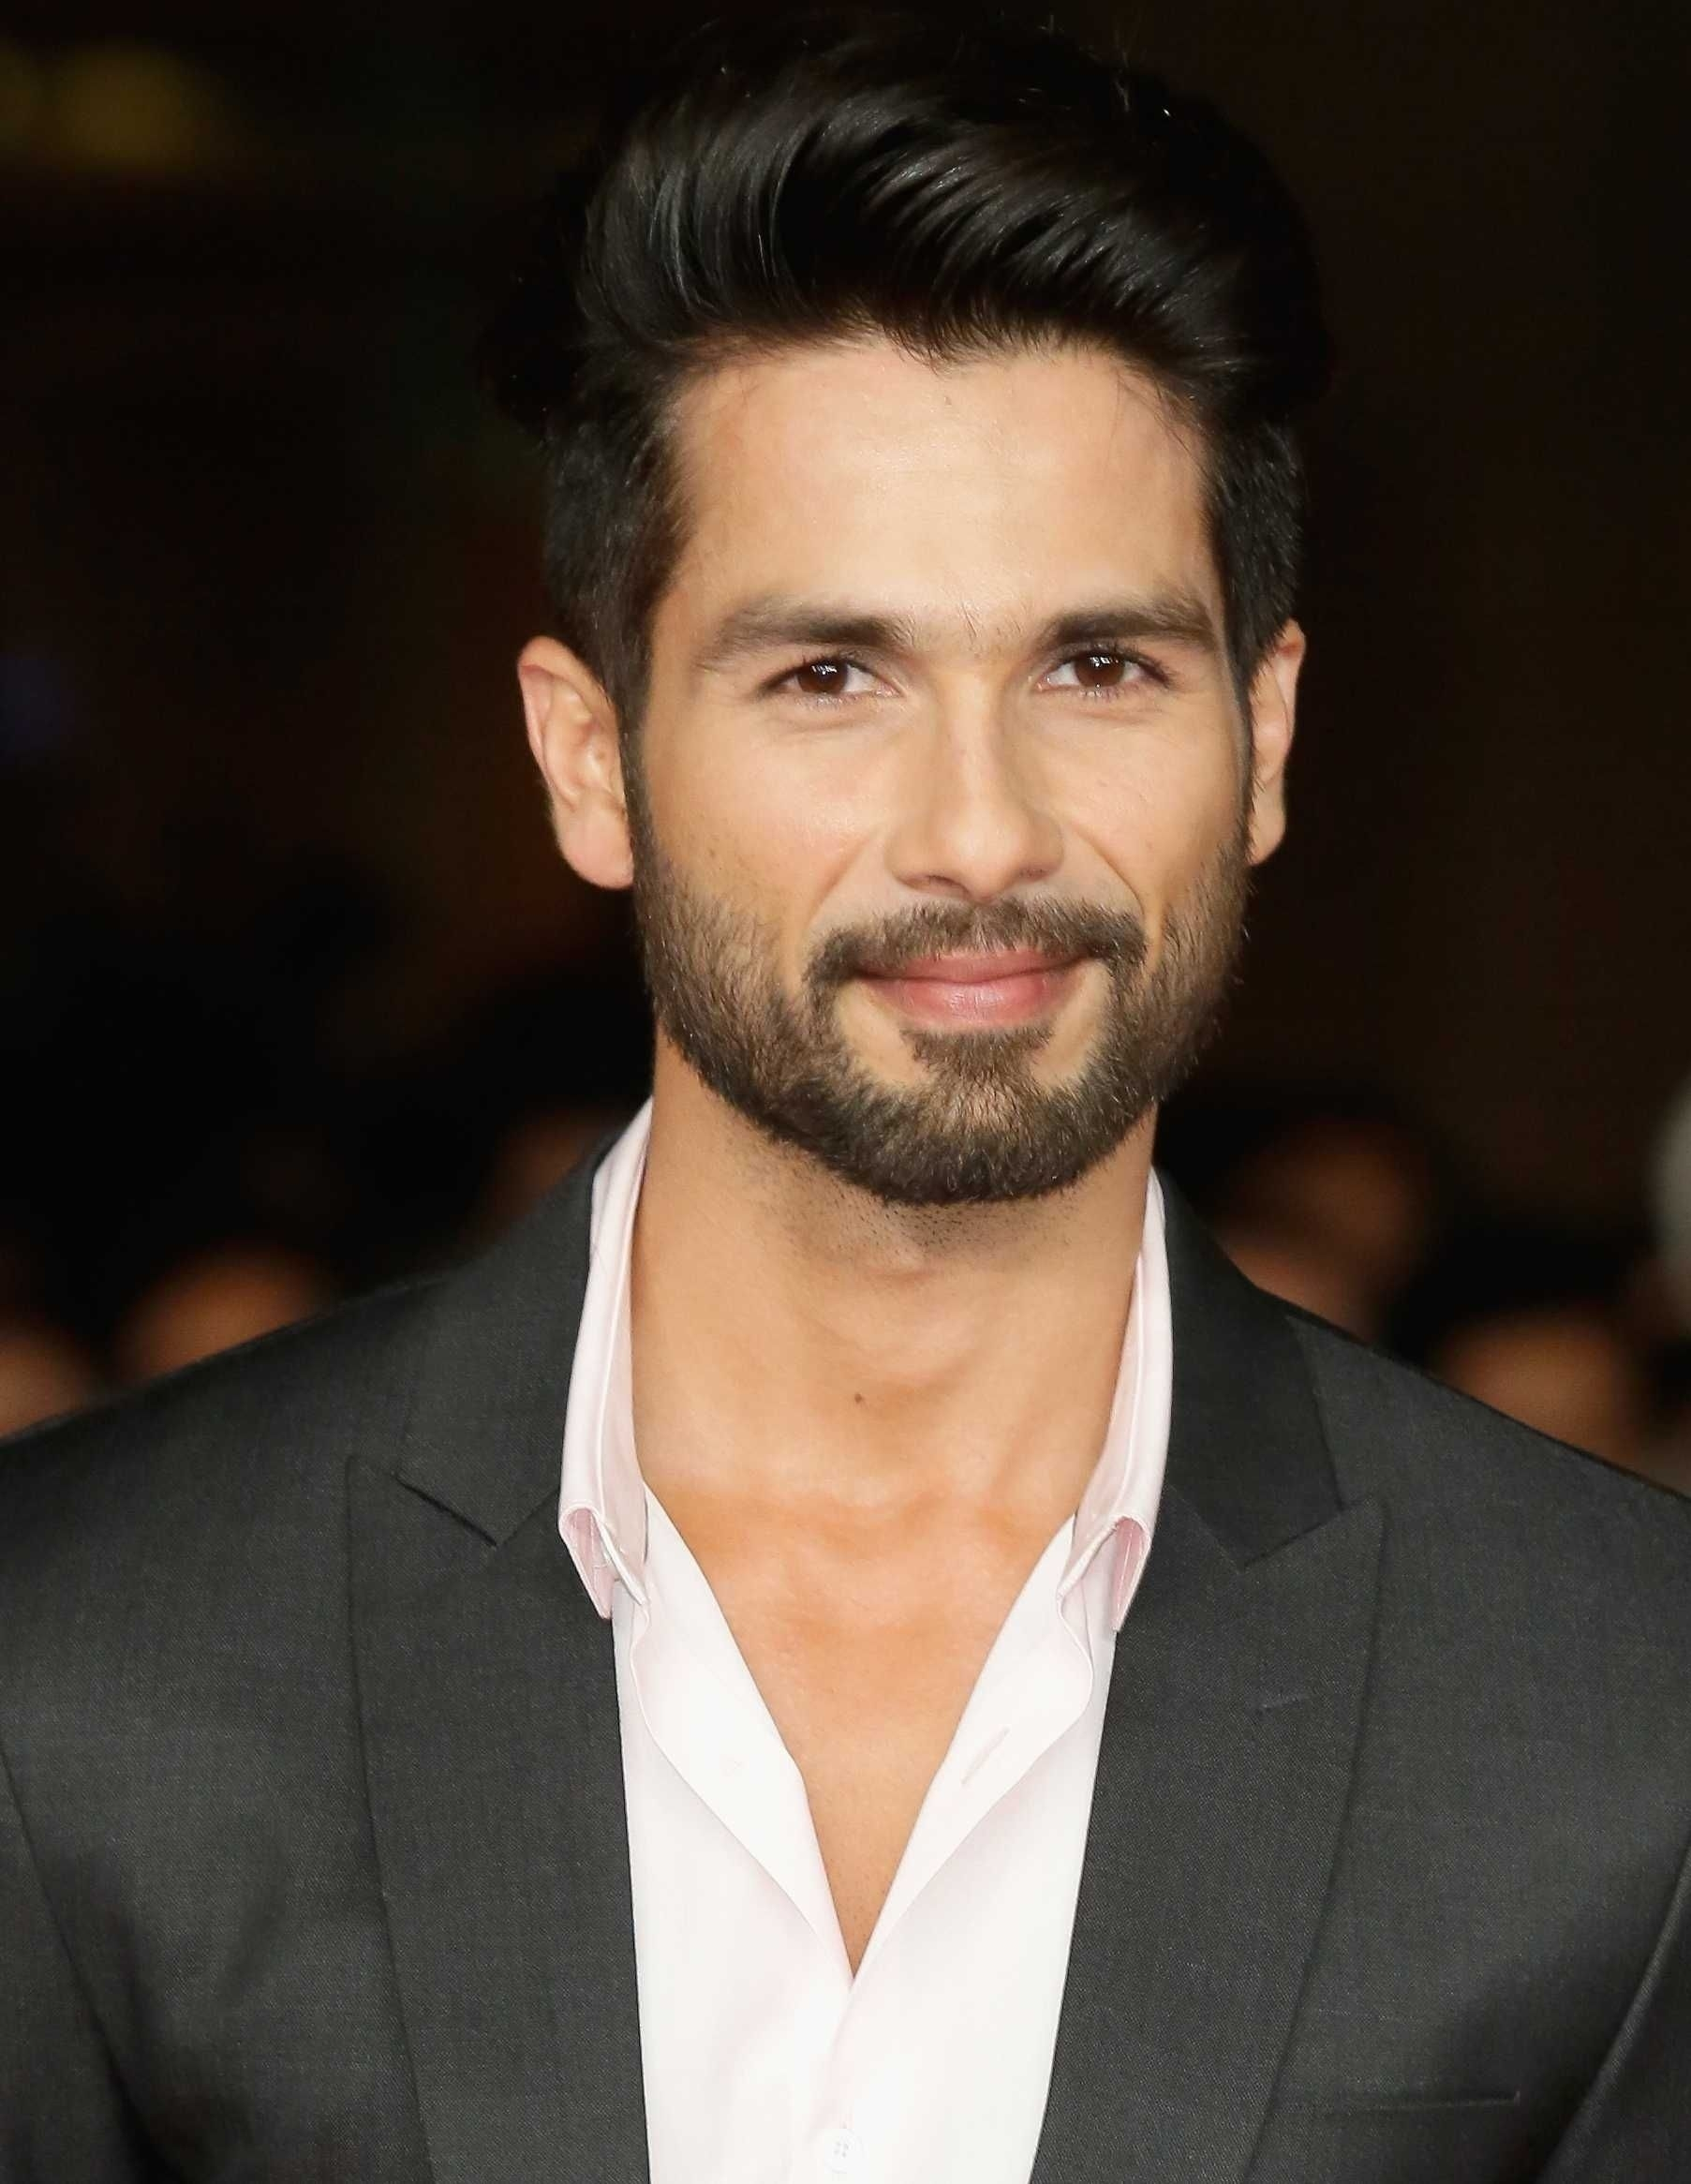 Indian Men Hairstyle For Round Face   Frisuren Modelle   Pinterest inside Hairstyle For Oval Face Indian Male